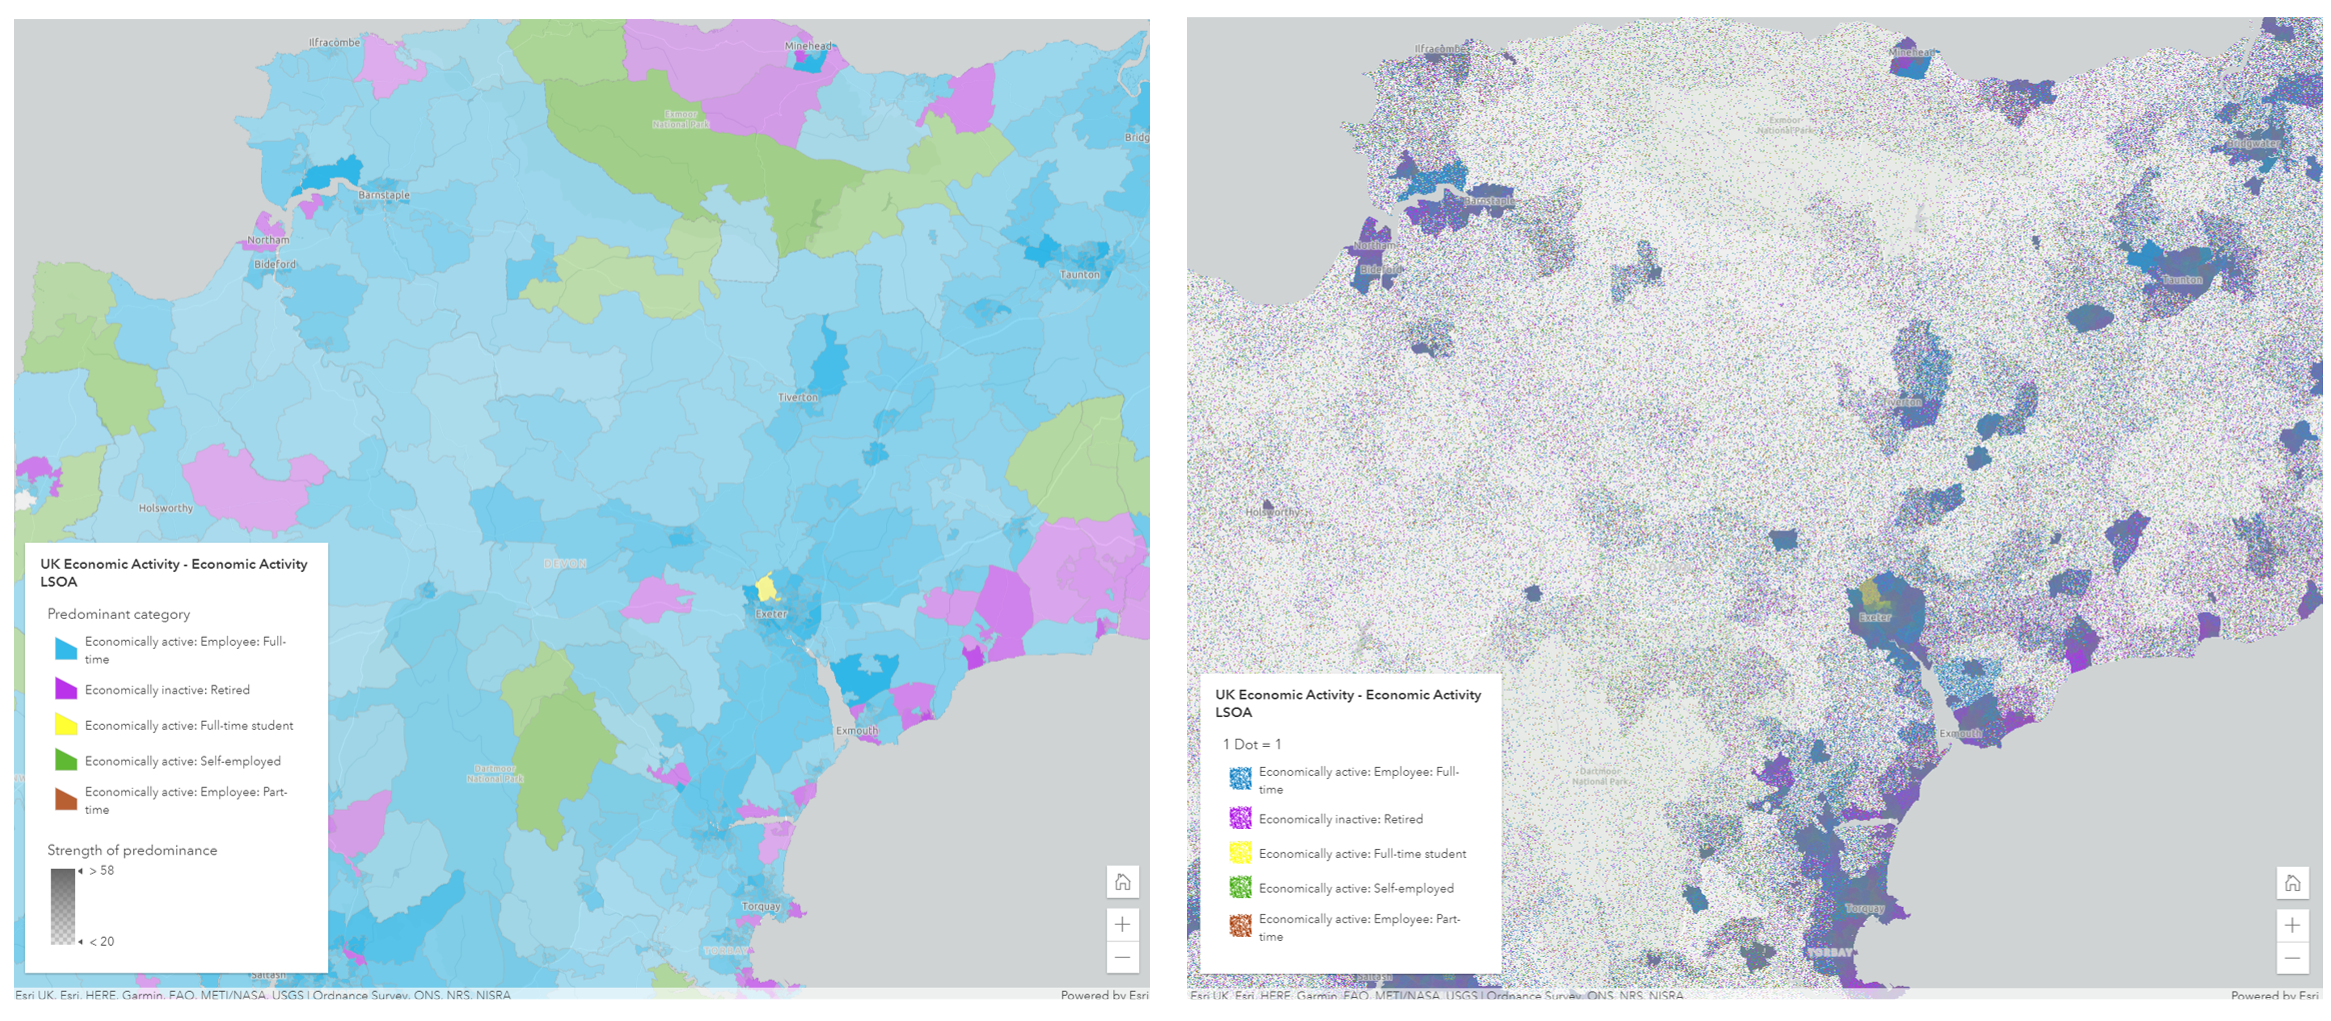 Predominant category versus dot density mapping styles